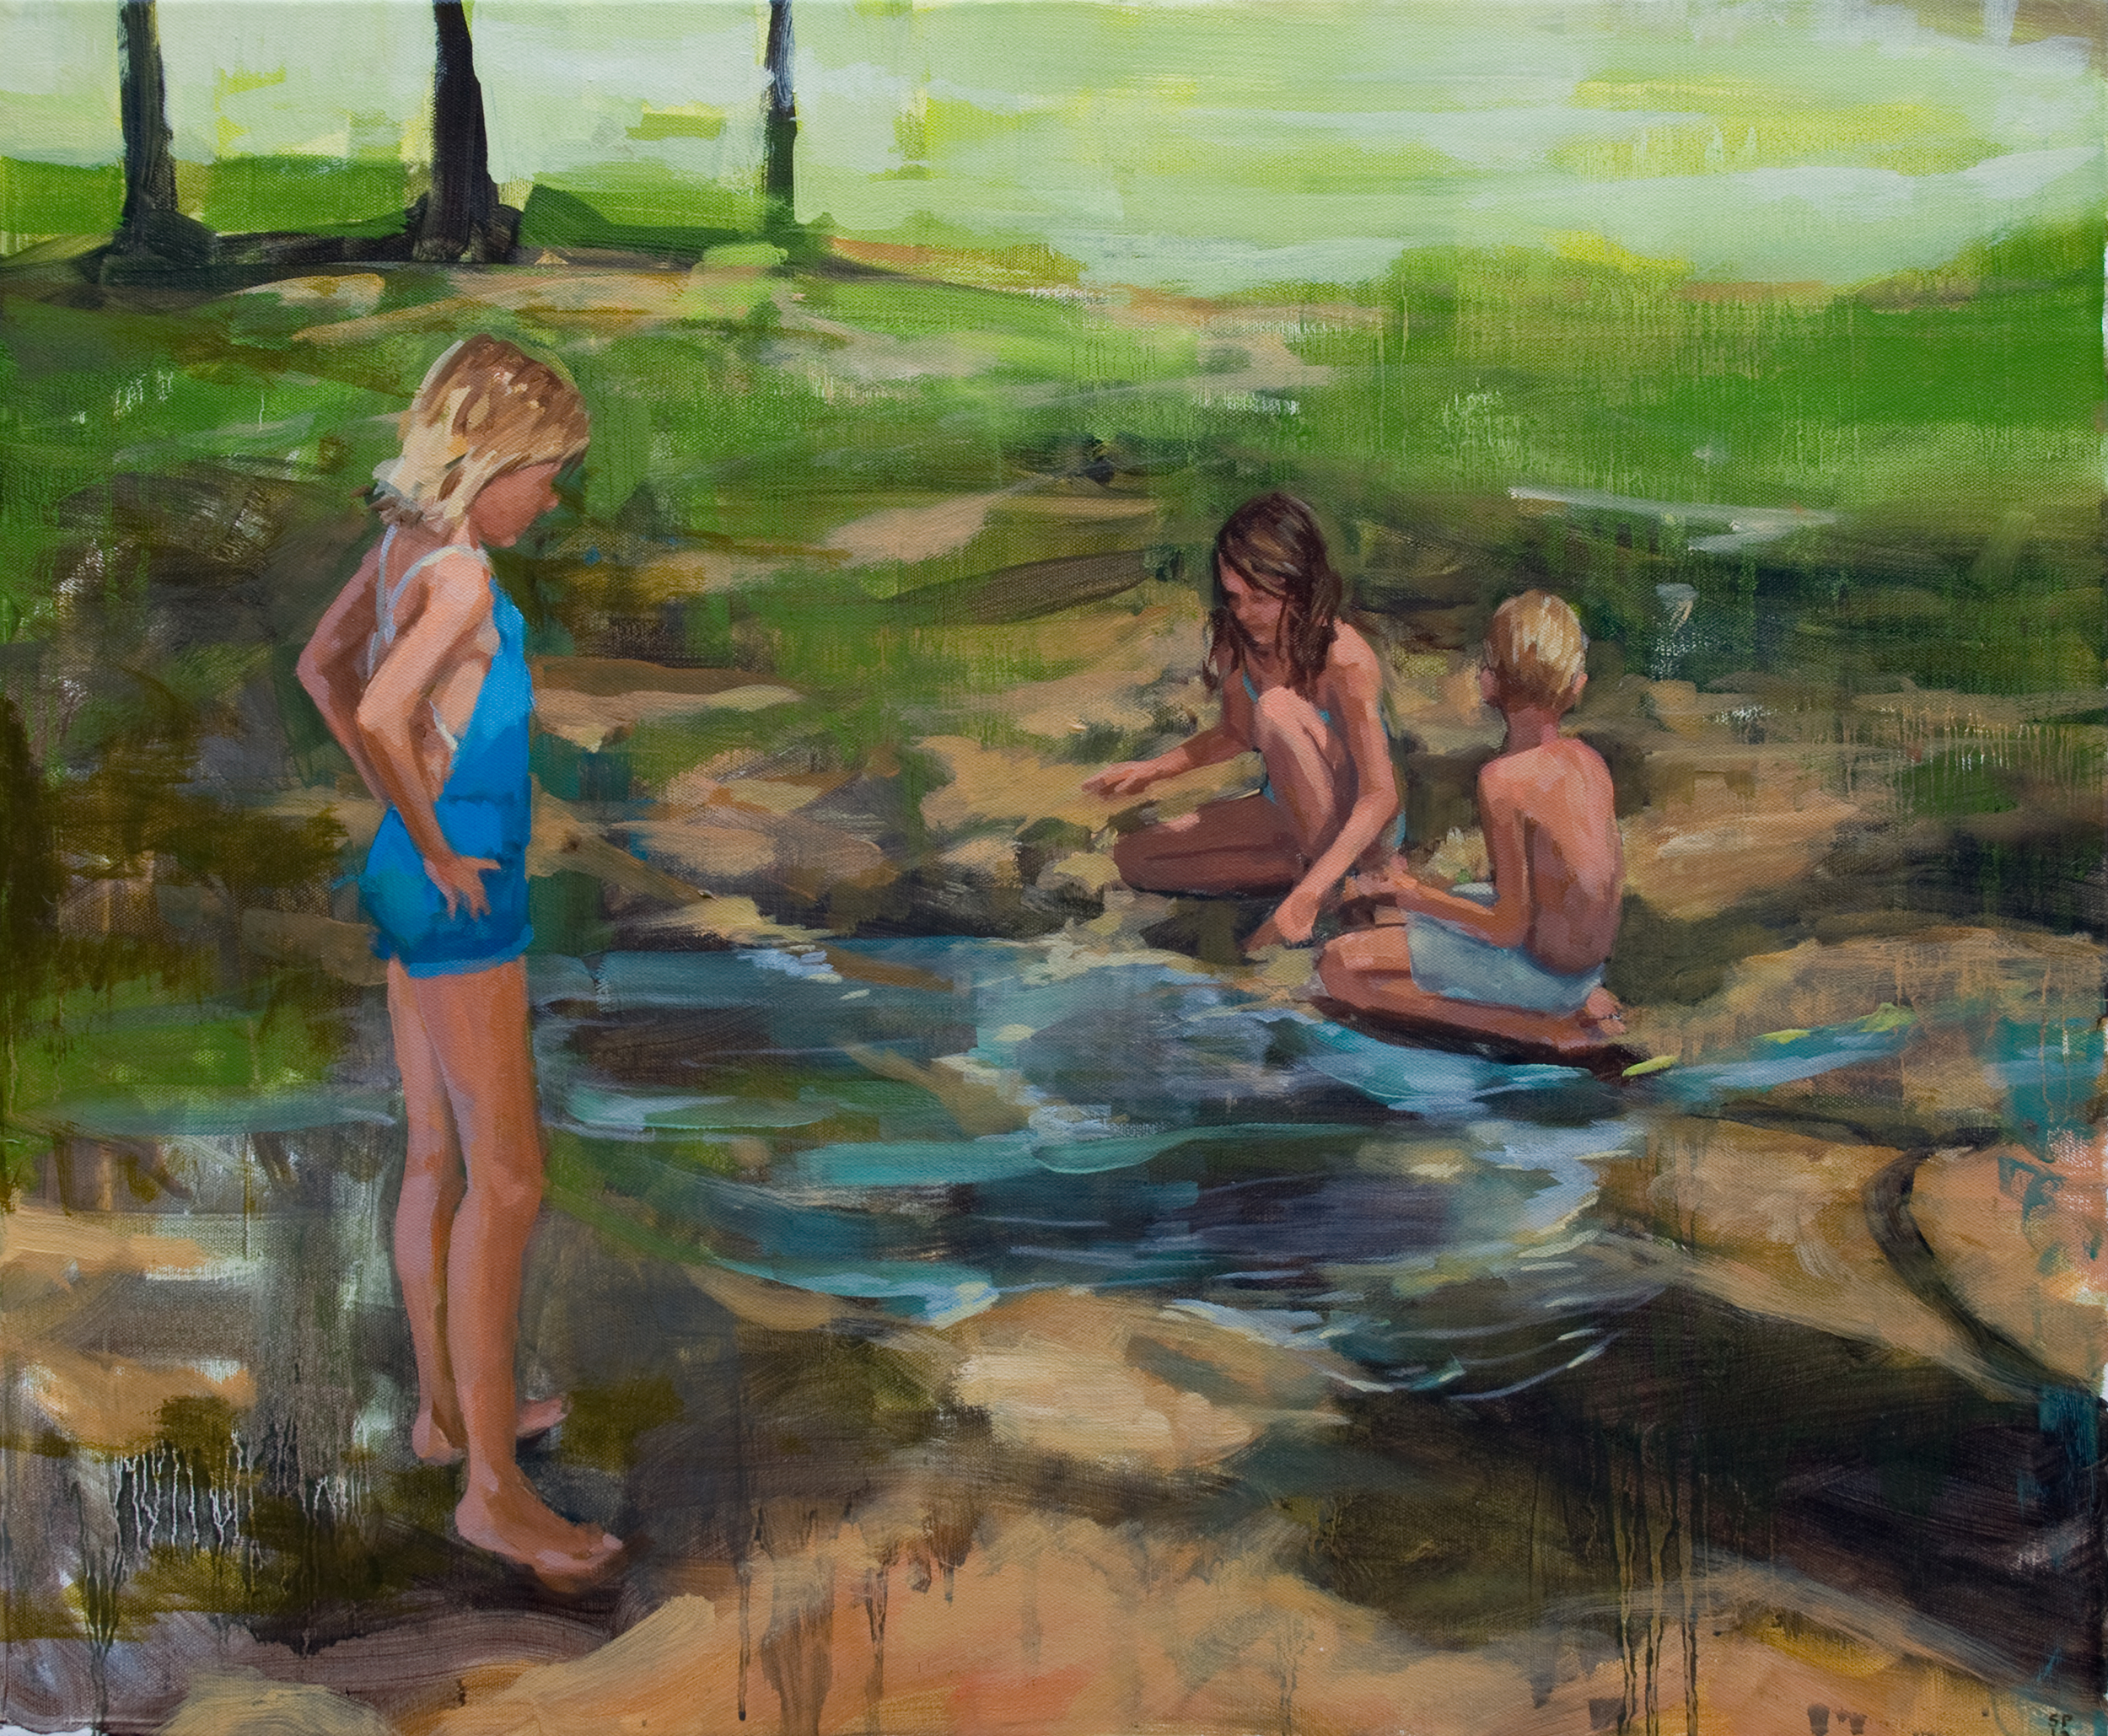 """Hose Water Rivers, oil on canvas, 20"""" x 24"""", 2013, Private Collection"""